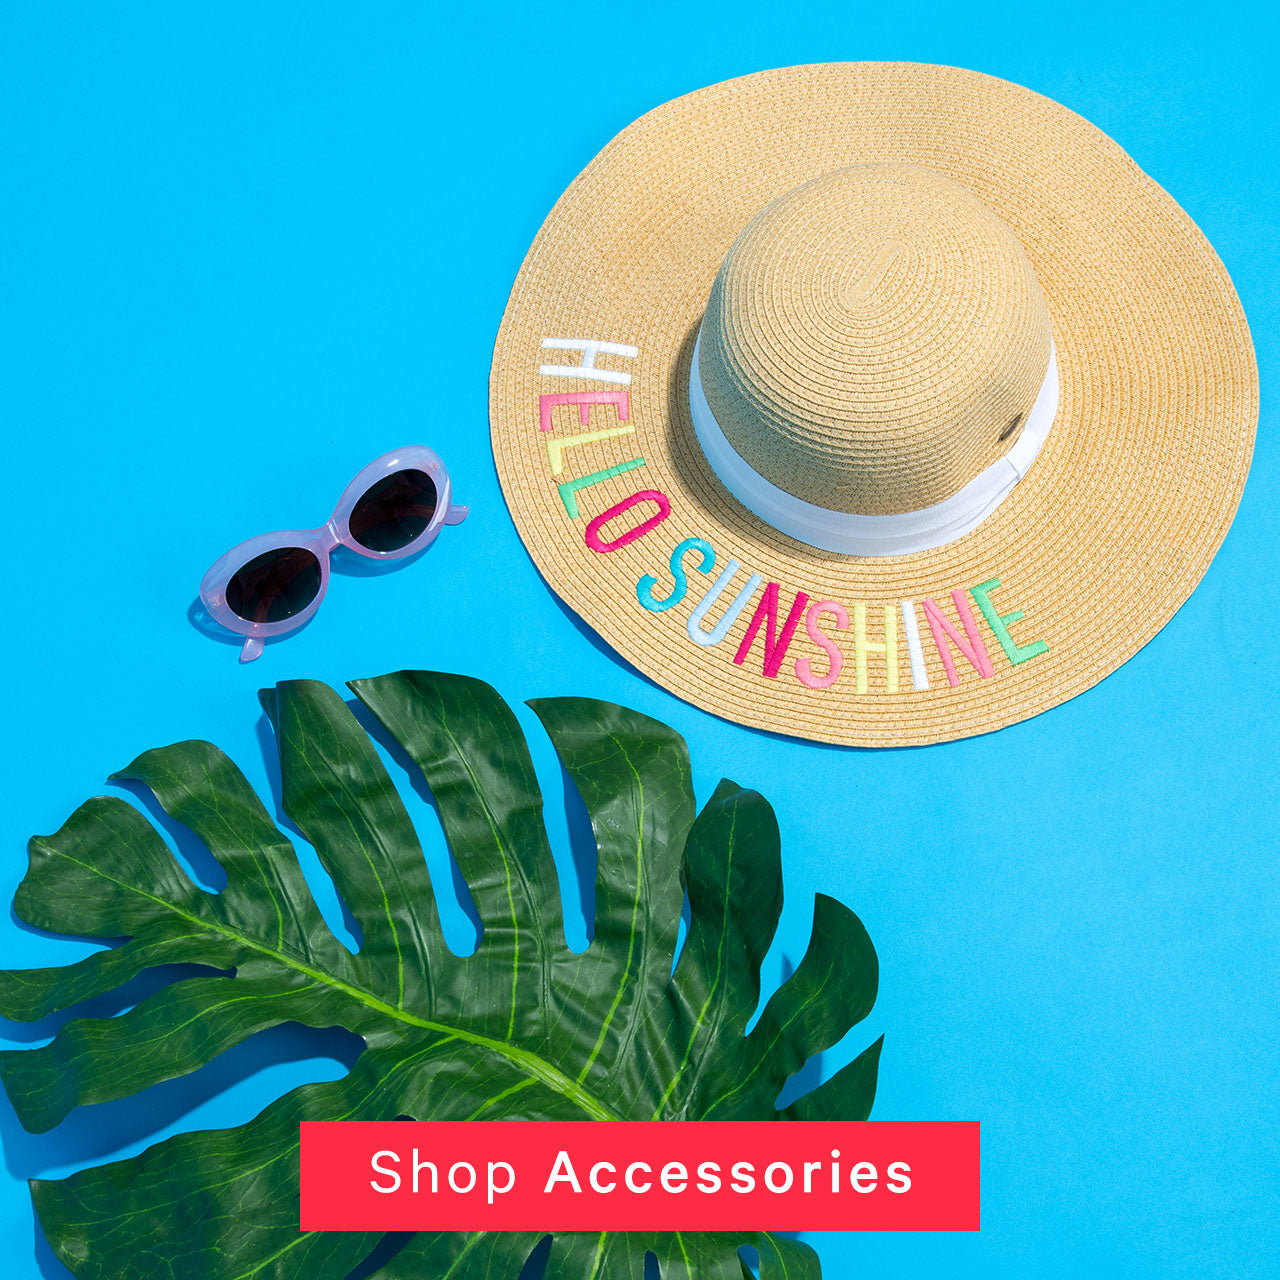 Unique Vintage — Shop Accessories